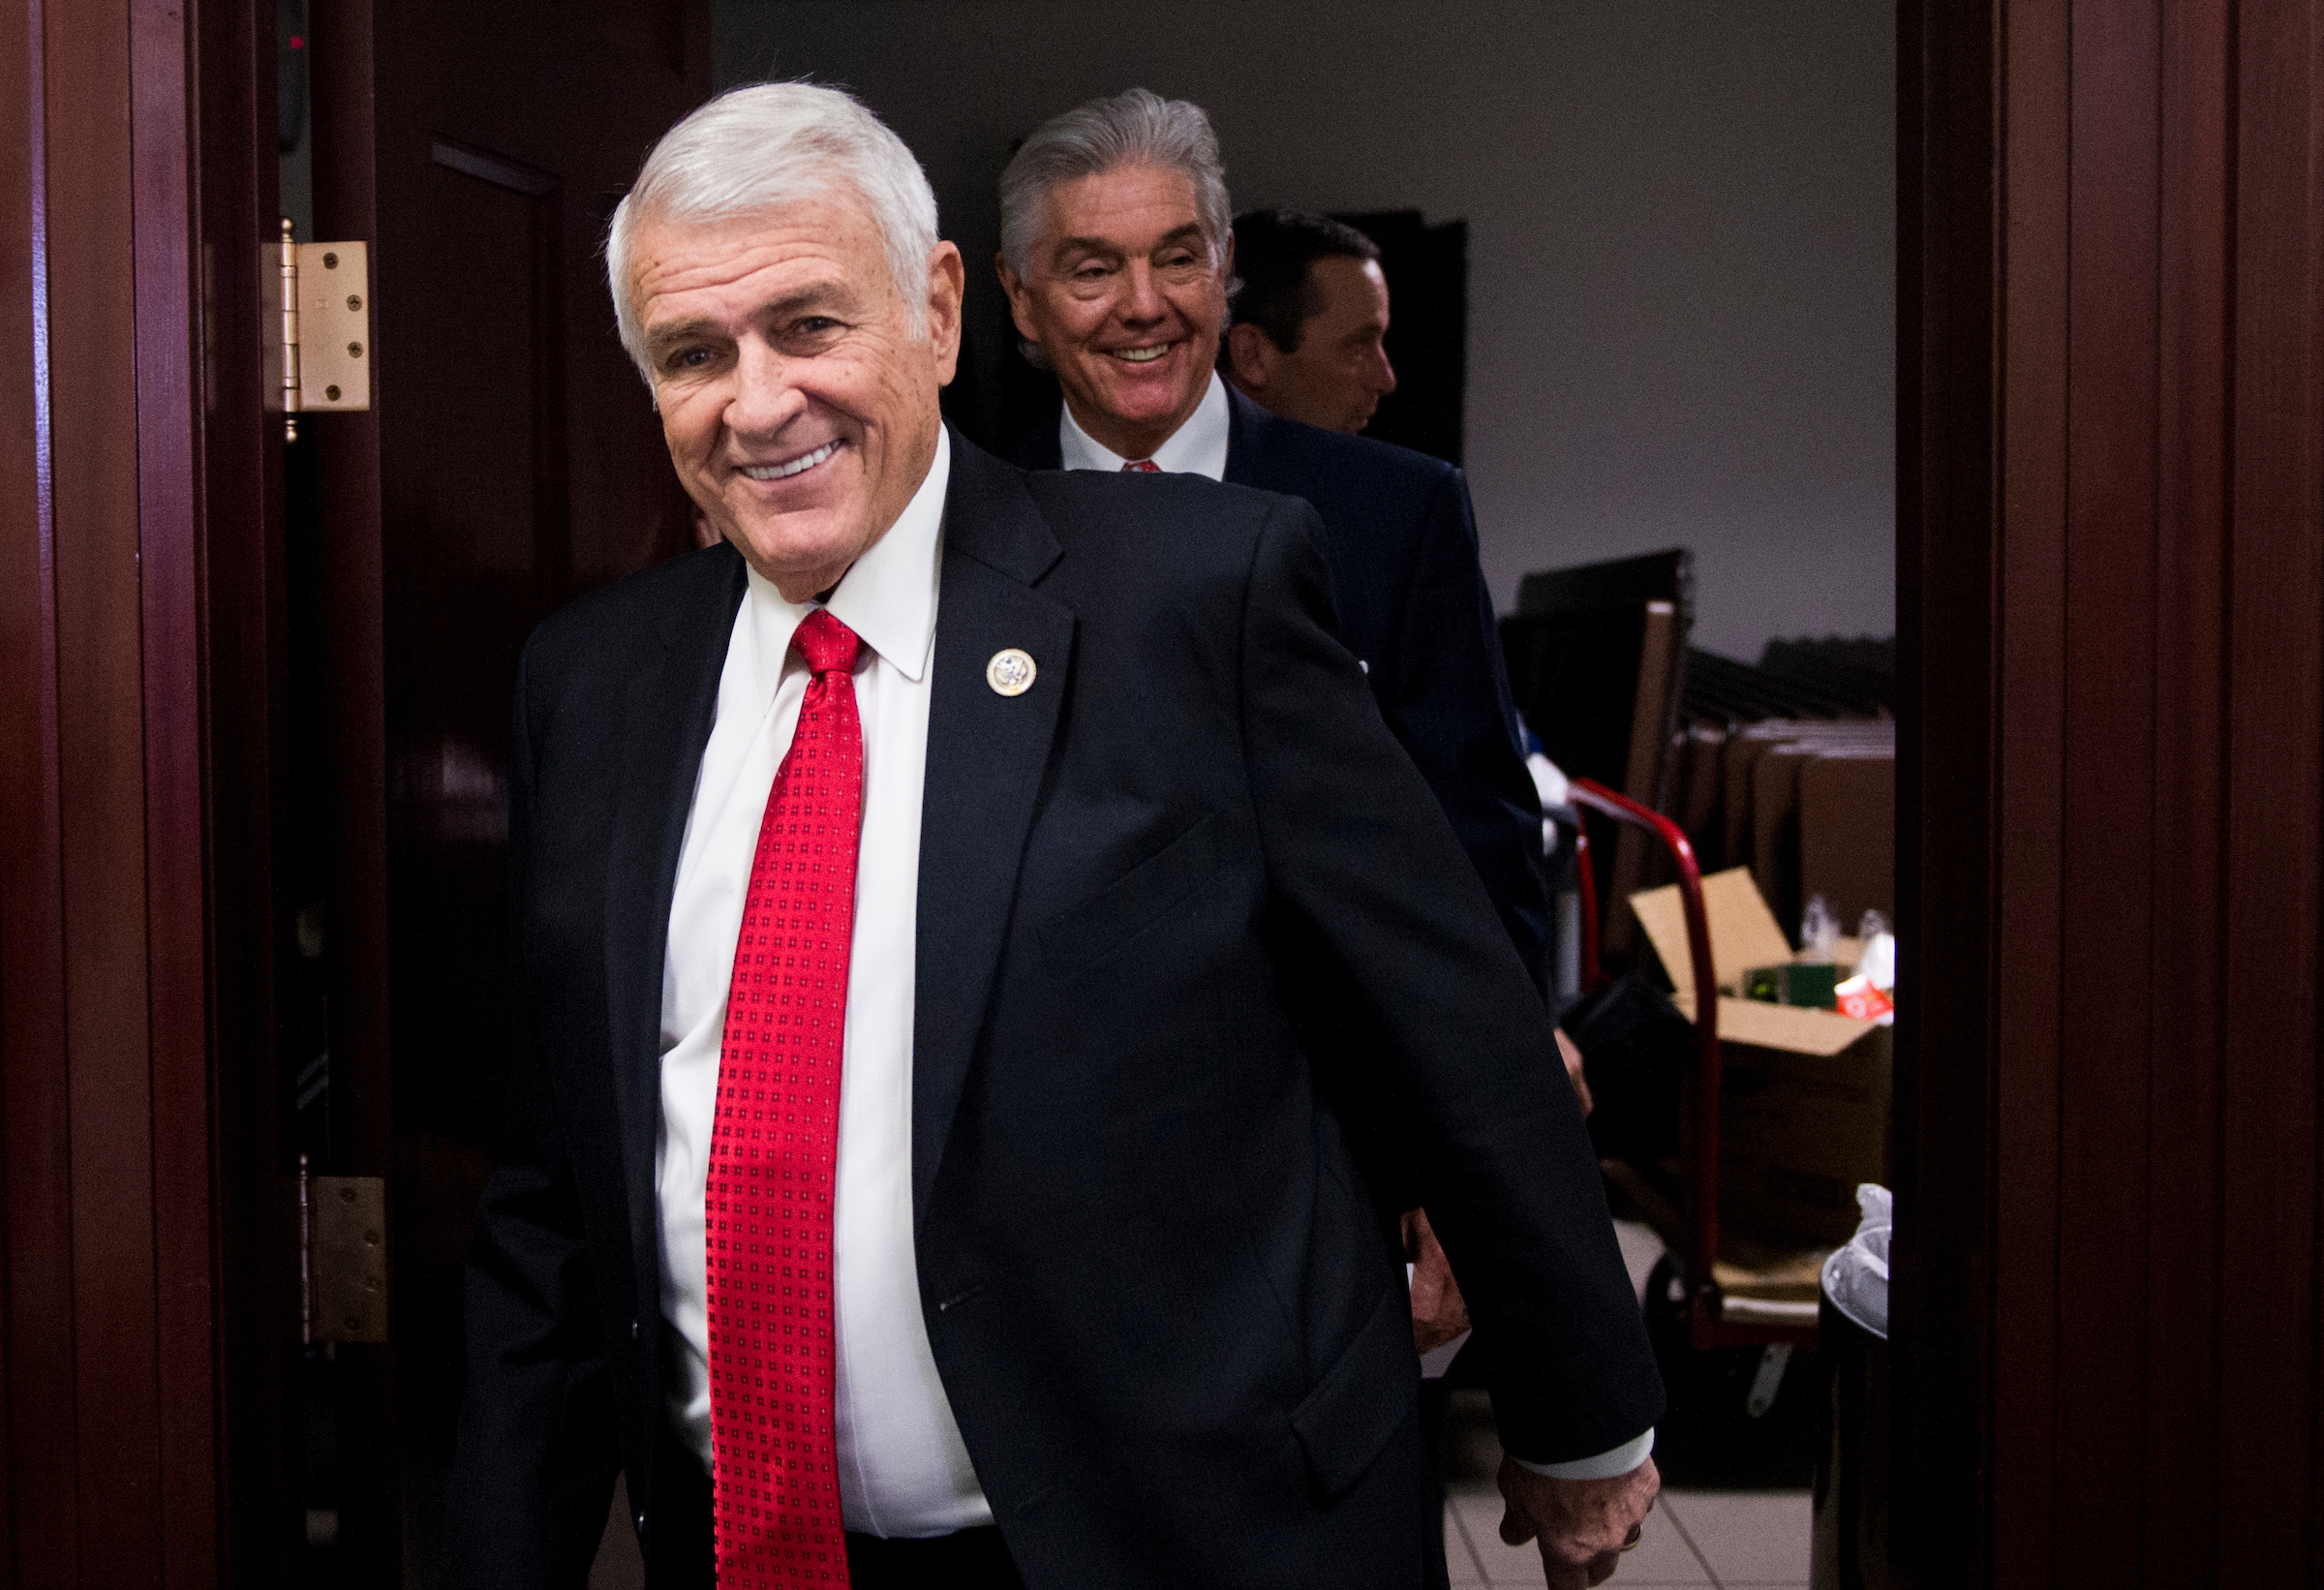 Rep. John Carter, R-Texas. (Bill Clark/CQ Roll Call file photo)